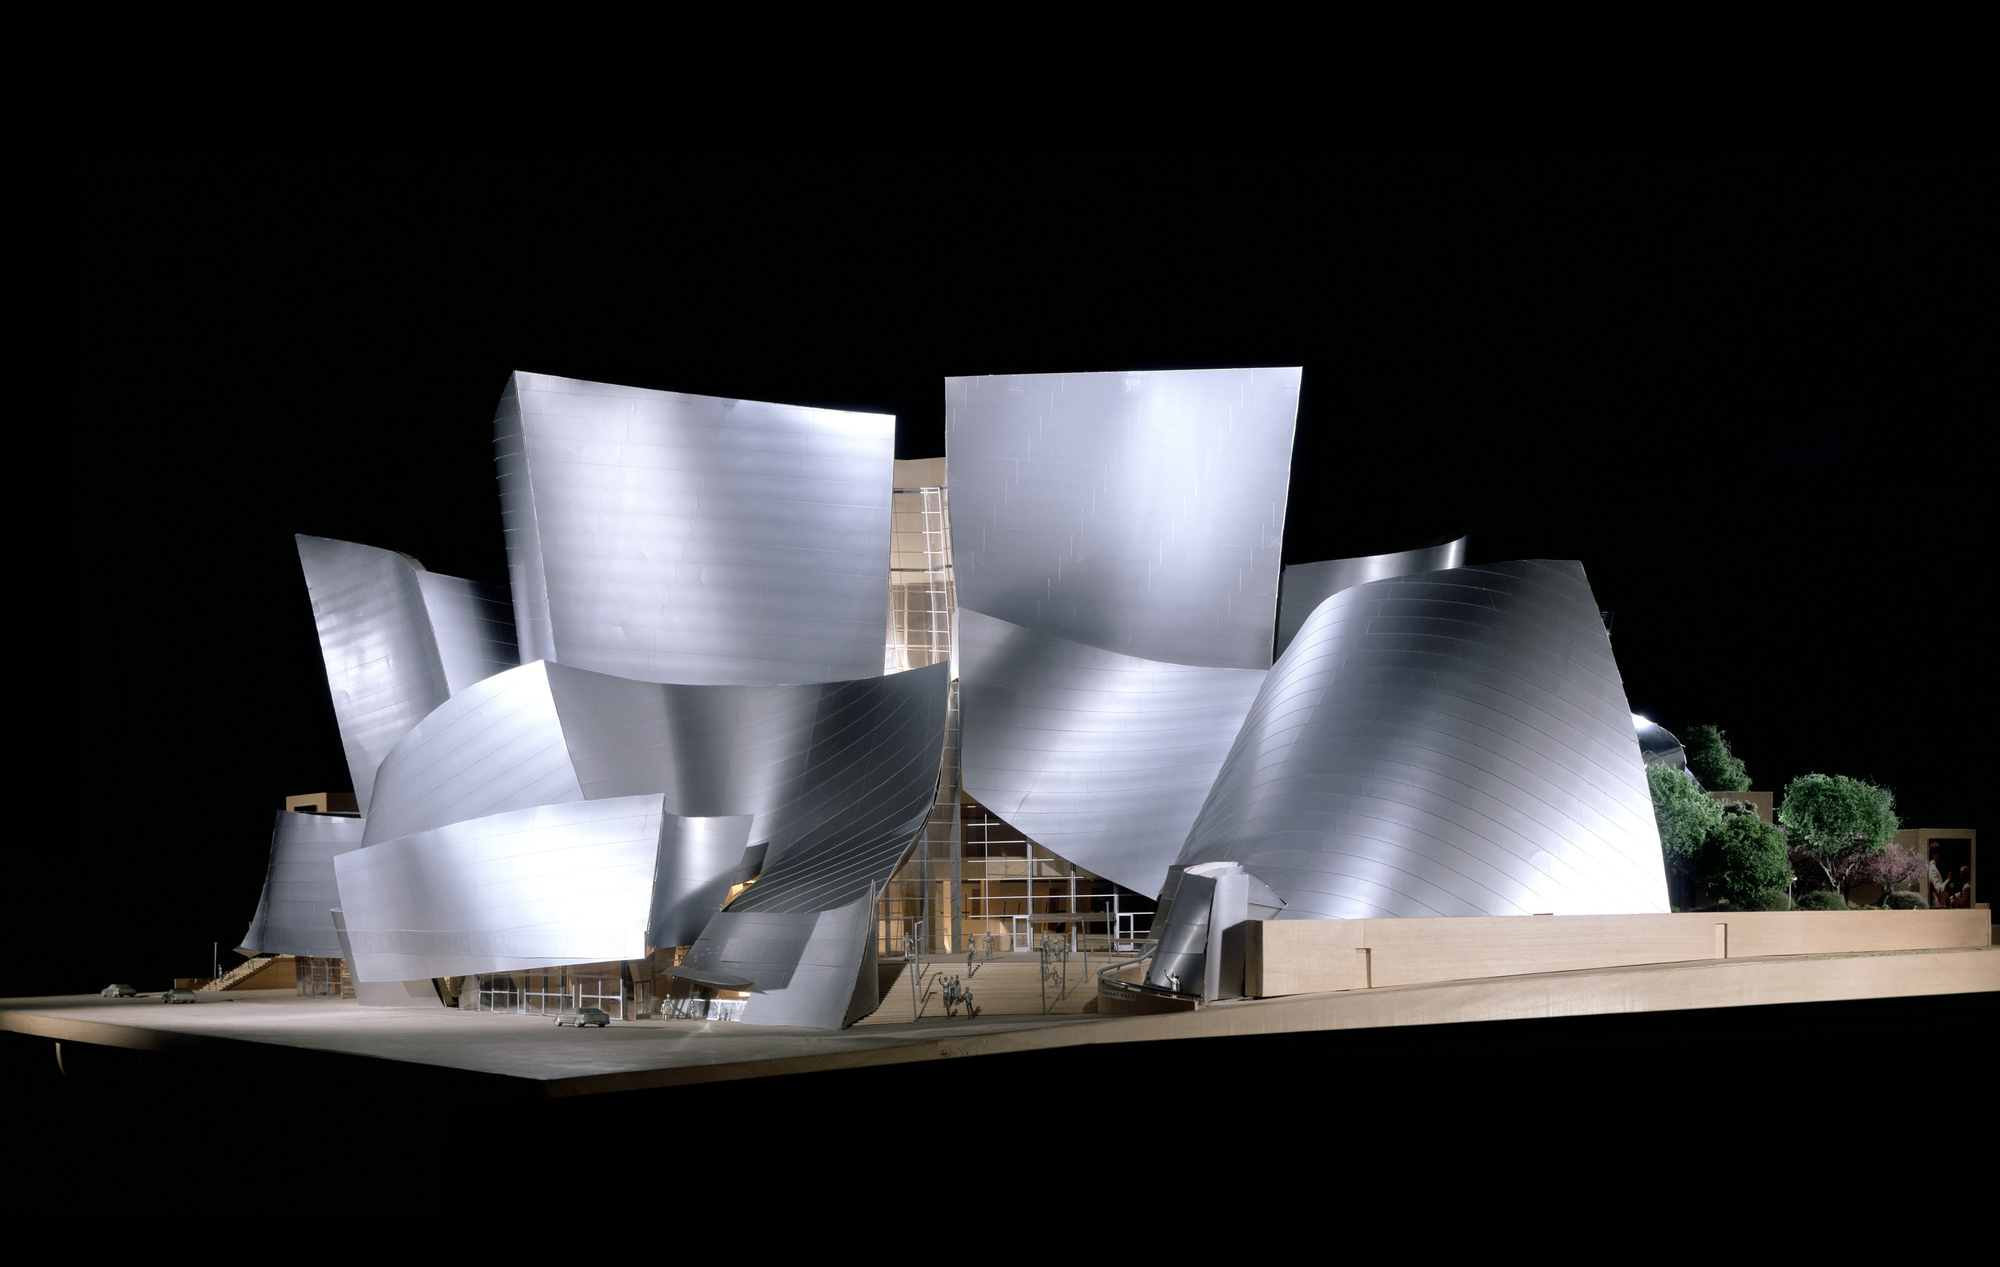 Ad classic norton house frank gehry archdaily - Getty Research Institute Acquires Extensive Frank Gehry Archive Archdaily